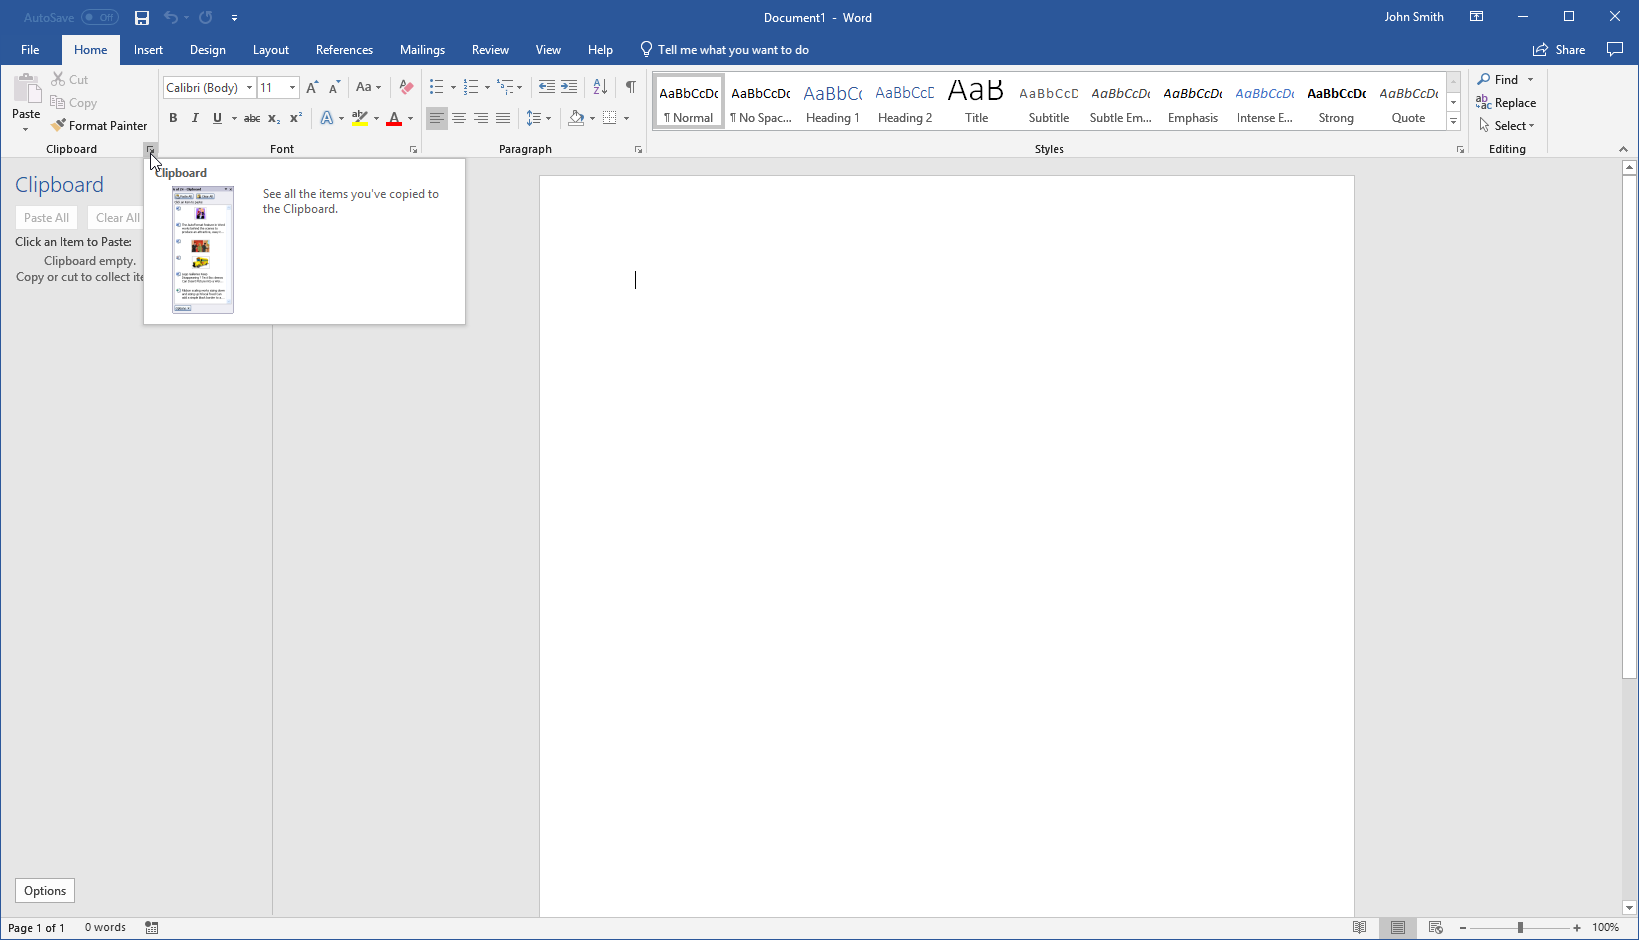 getting started with word 13